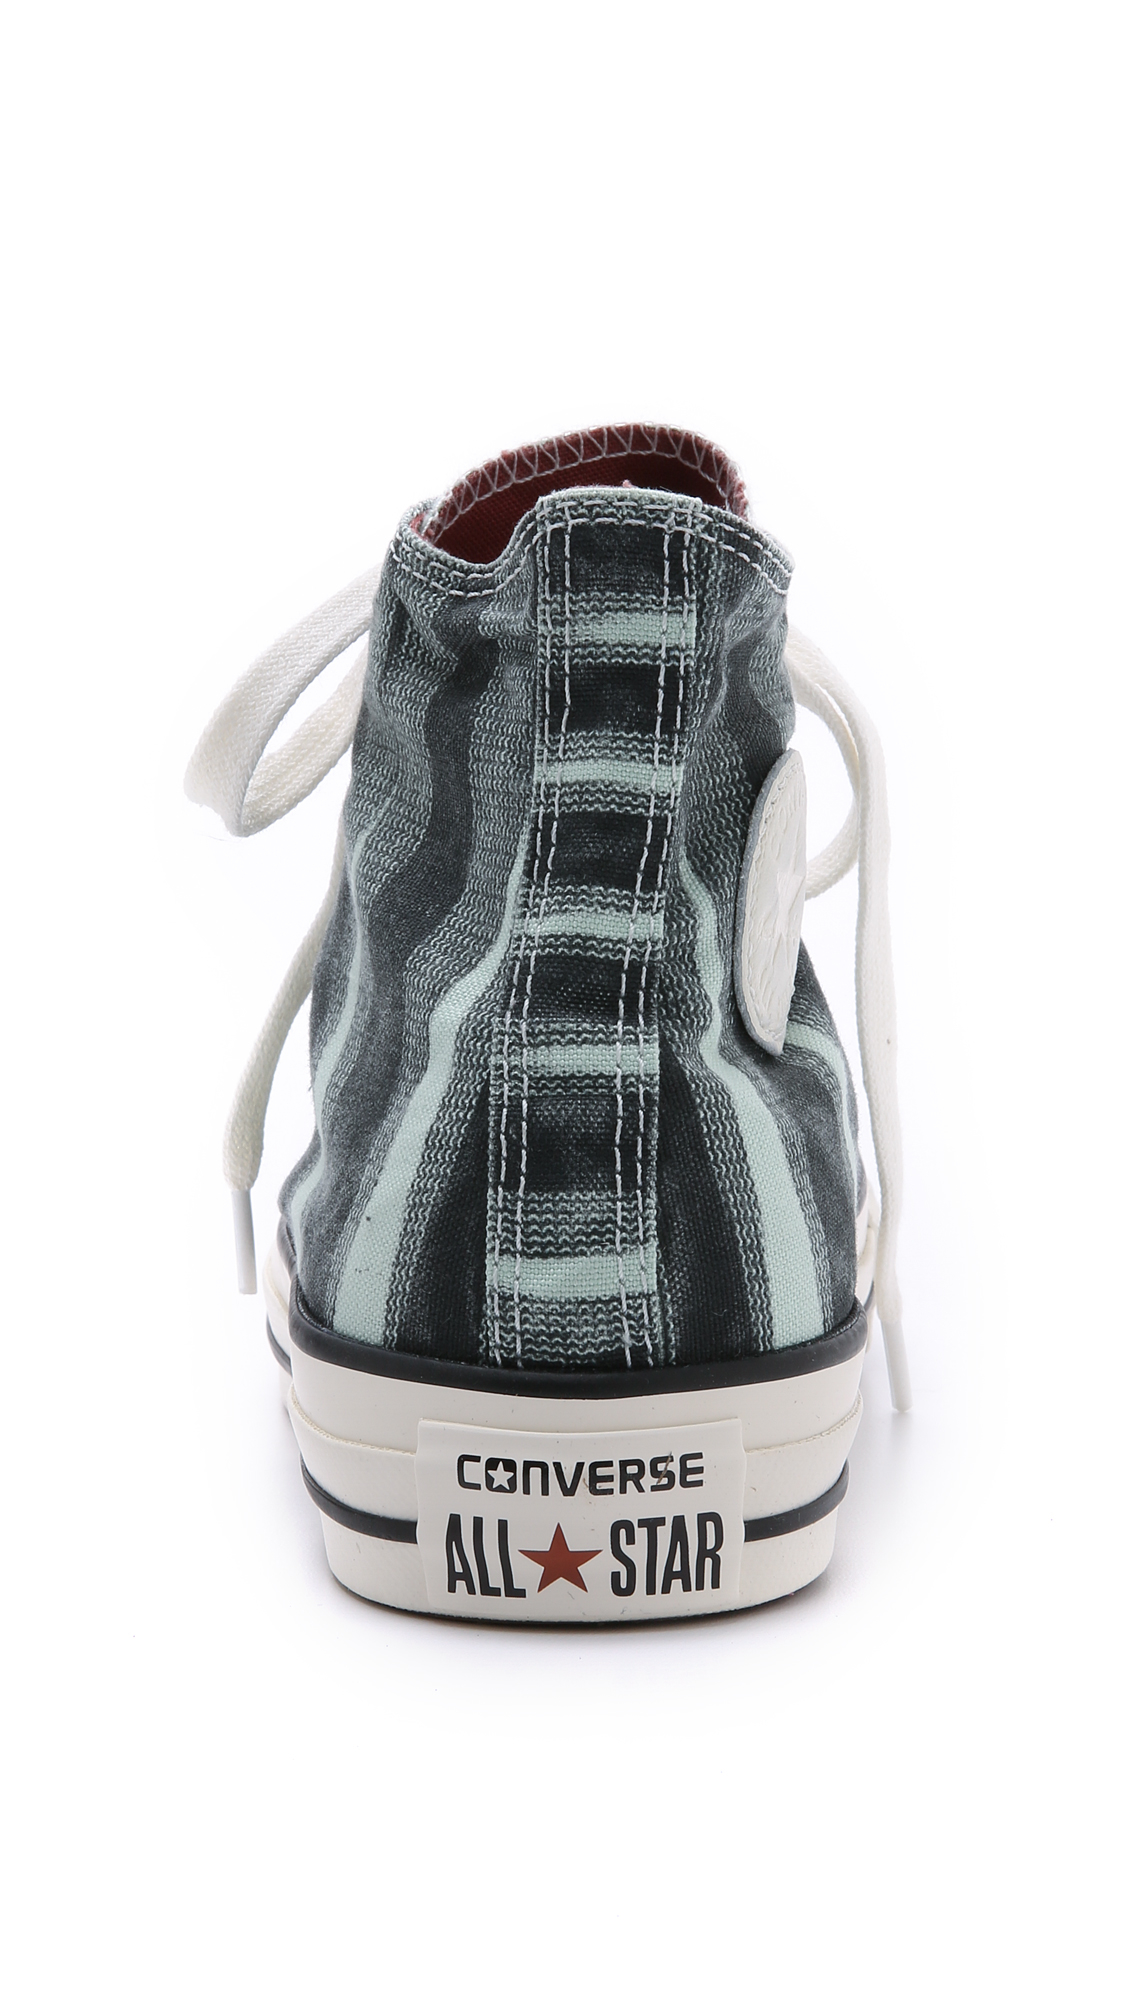 06695cb74d442 Converse Chuck Taylor All Star Missoni High Top Sneakers in Green - Lyst